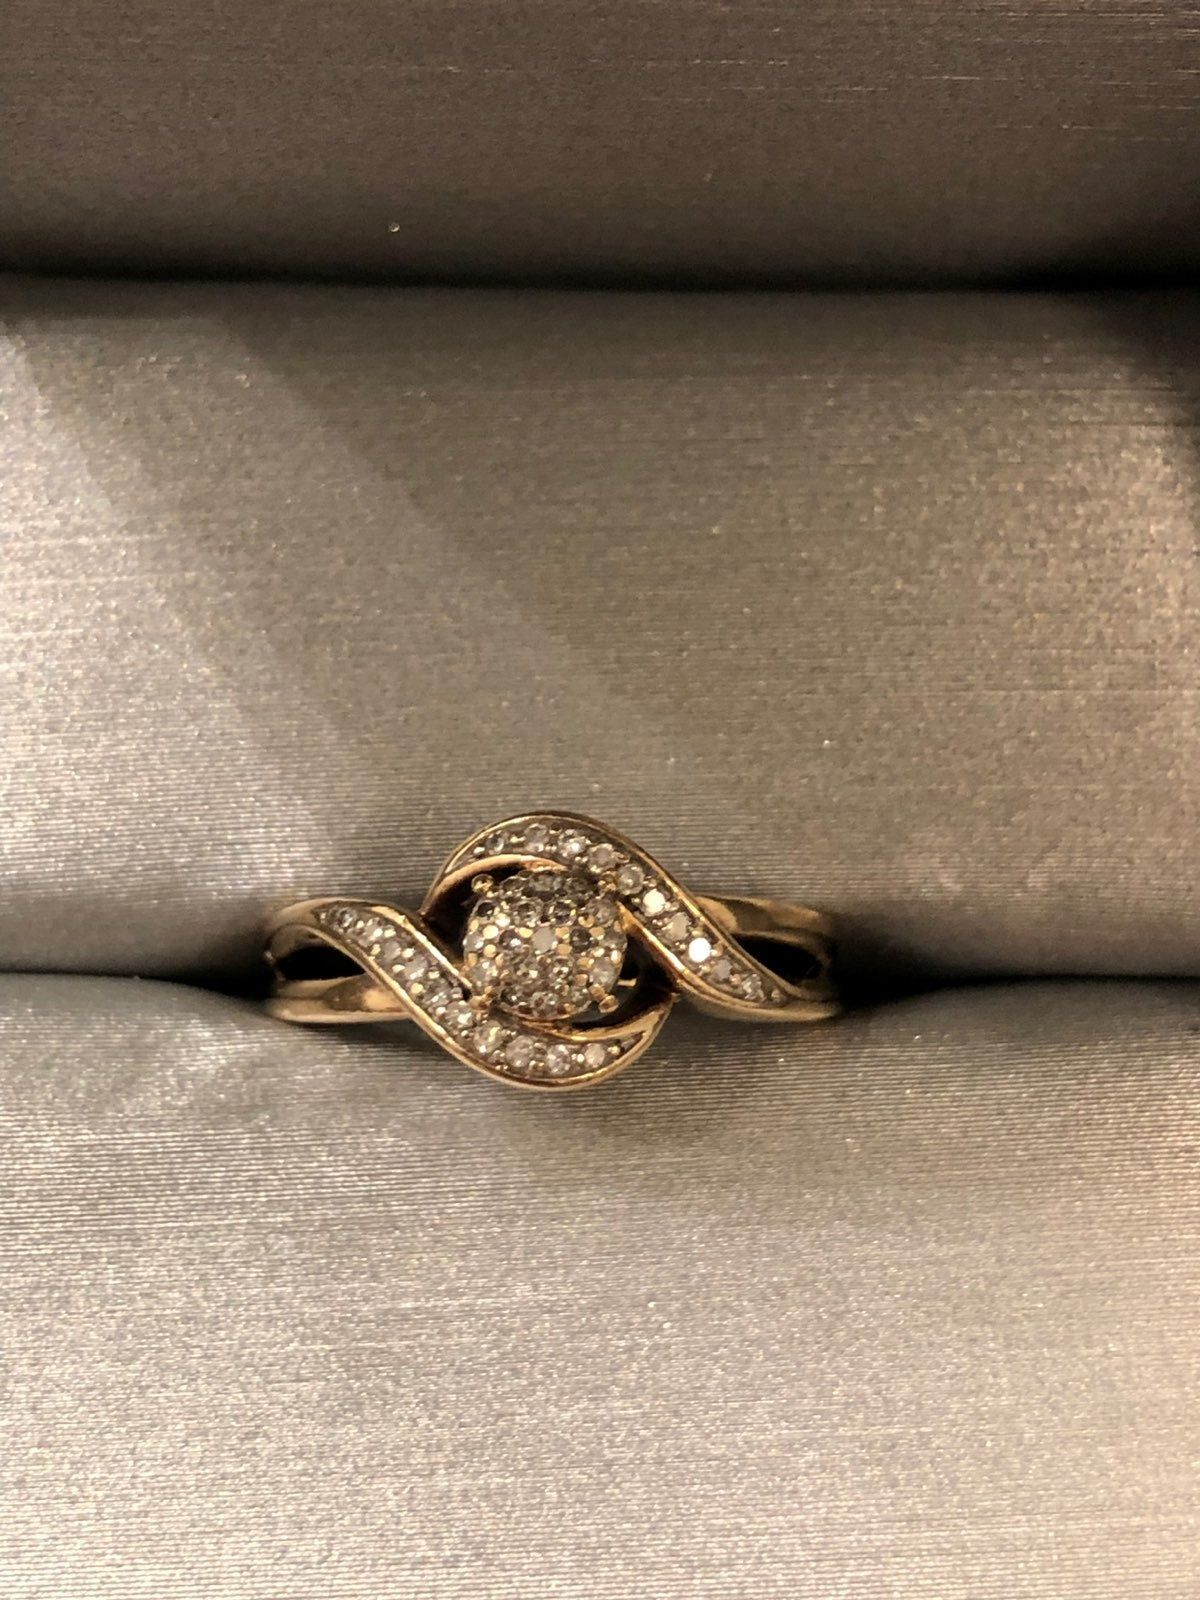 Authentic 10k Gold Ring With 1 8 Cttw Diamonds With Original Receipt Of Purchase Included Zales Jewelry Receipt Original C Zales Jewelry Rings Zales Rings